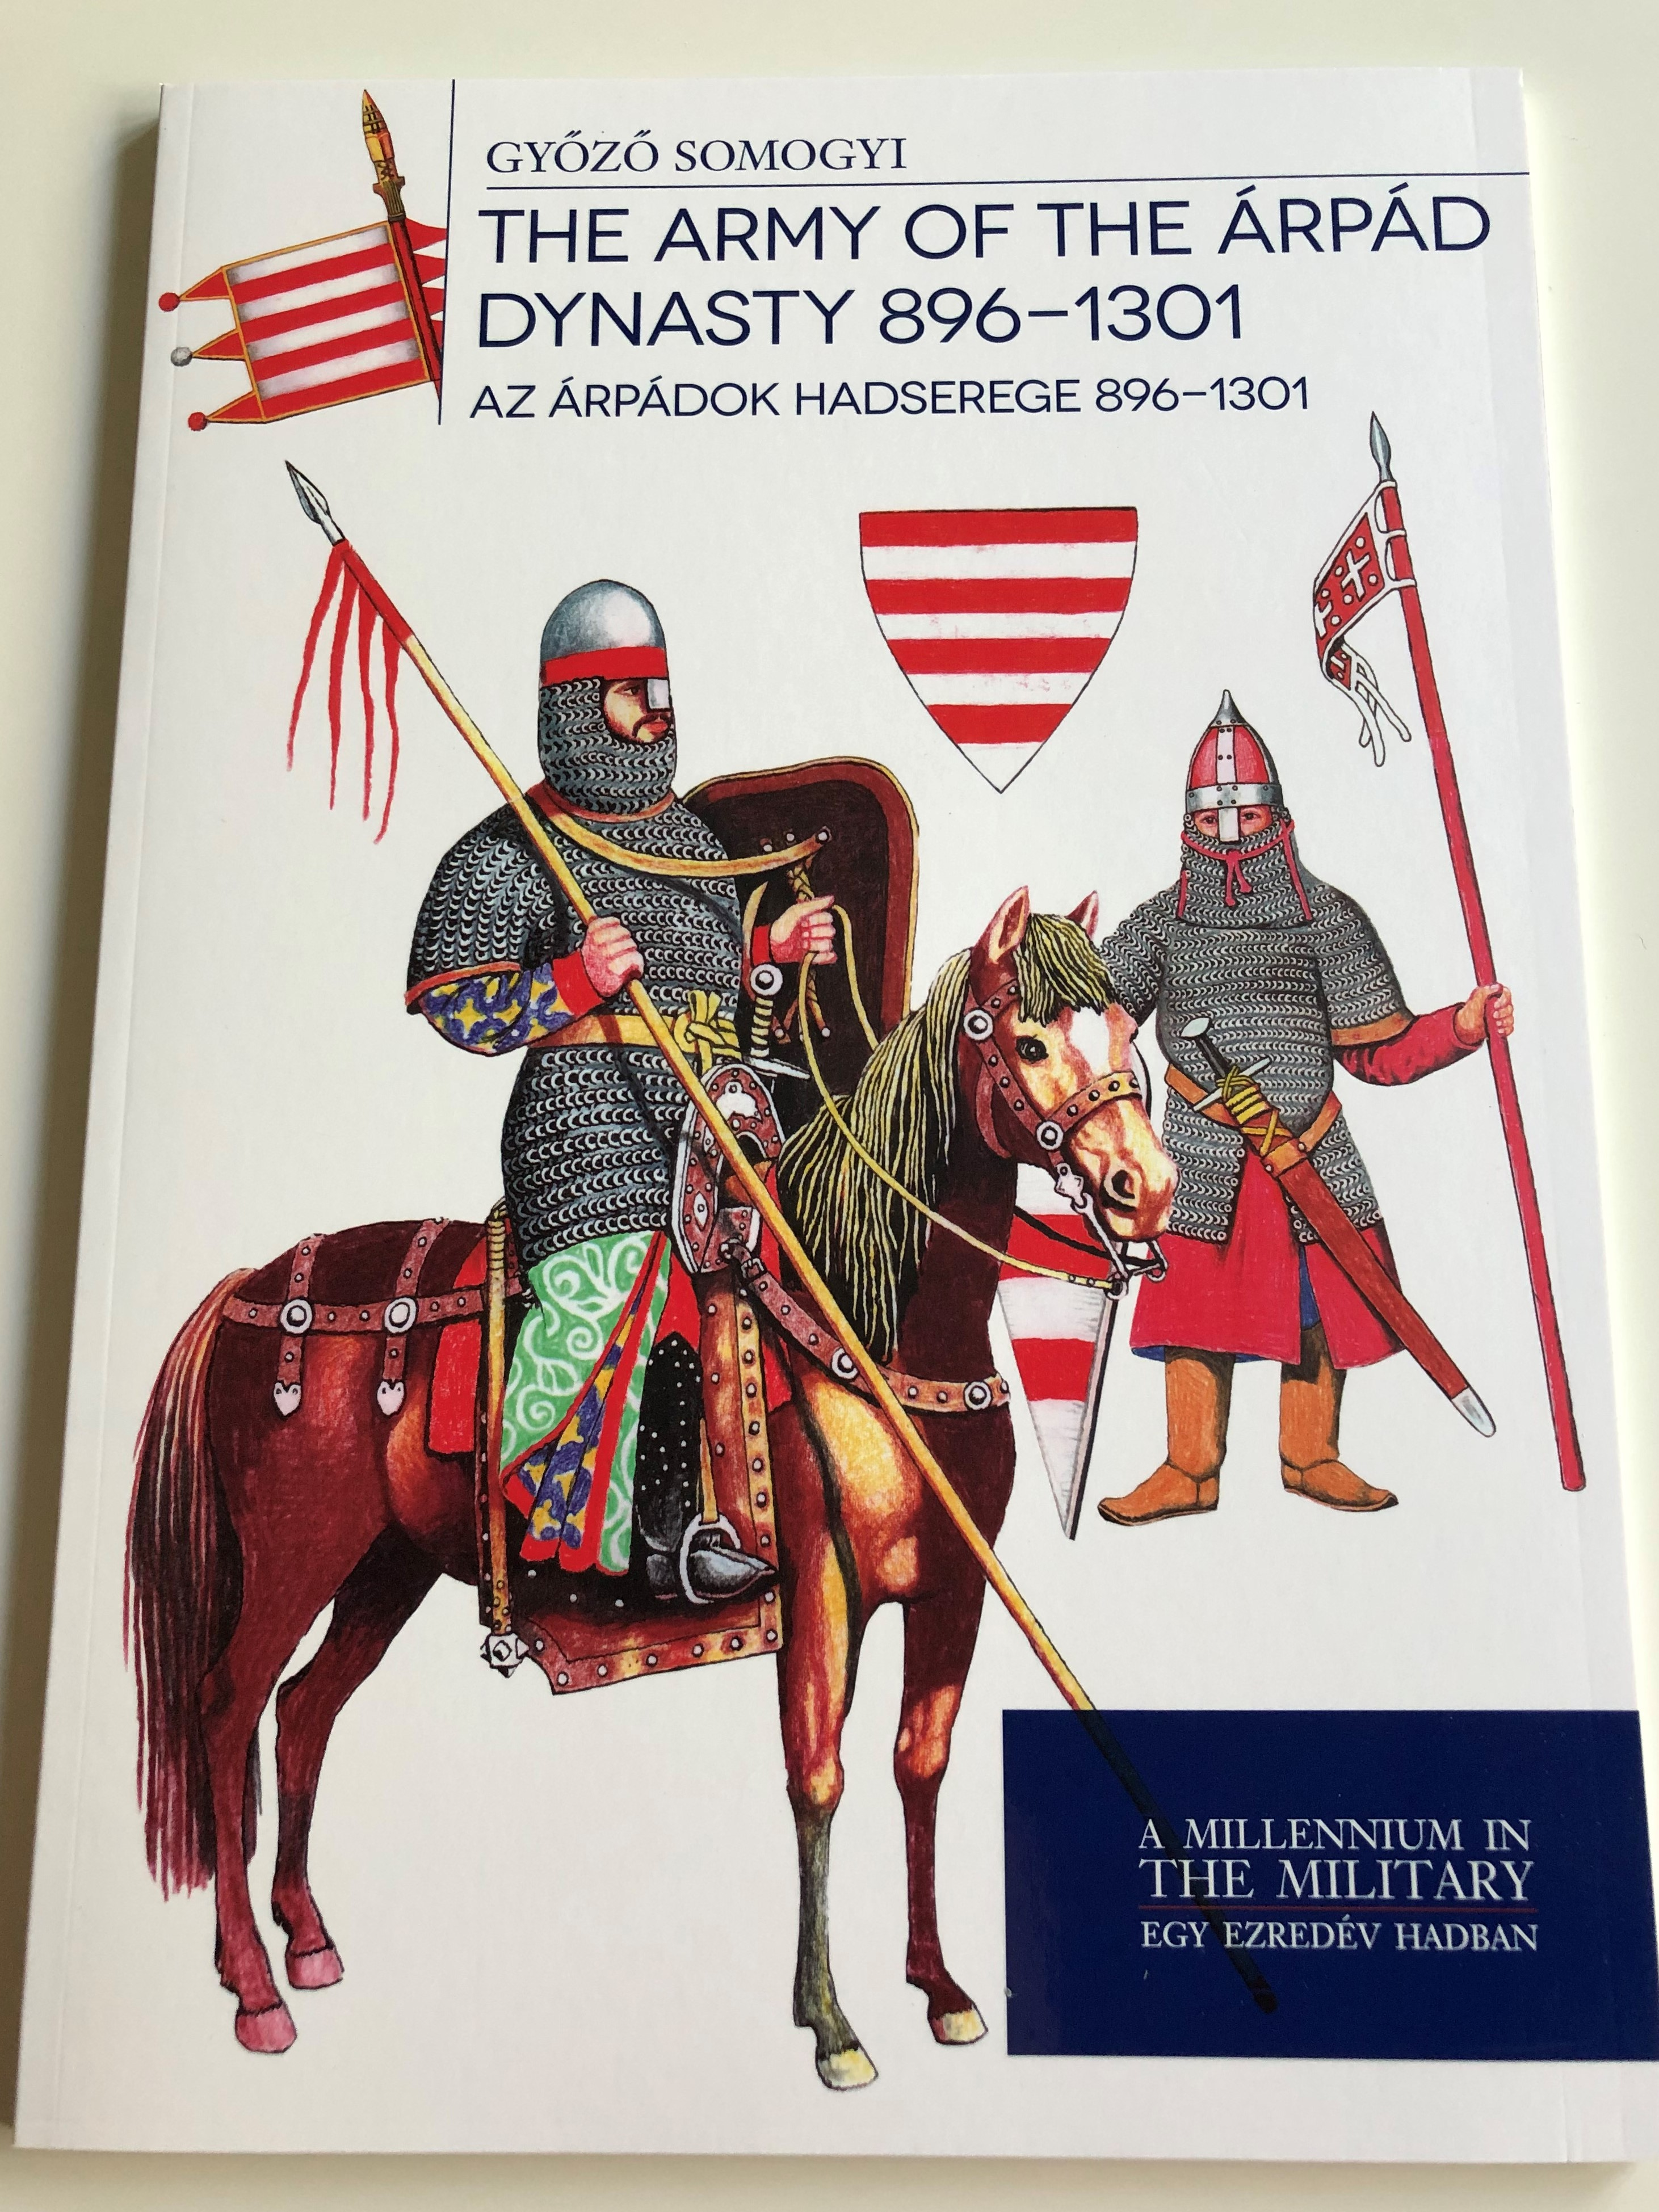 the-army-of-the-rp-d-dynasty-896-1301-by-gy-z-somogyi-az-rp-dok-hadserege-896-1301-a-millenium-in-the-military-egy-ezred-v-hadban-paperback-2017-hm-zr-nyi-1-.jpg